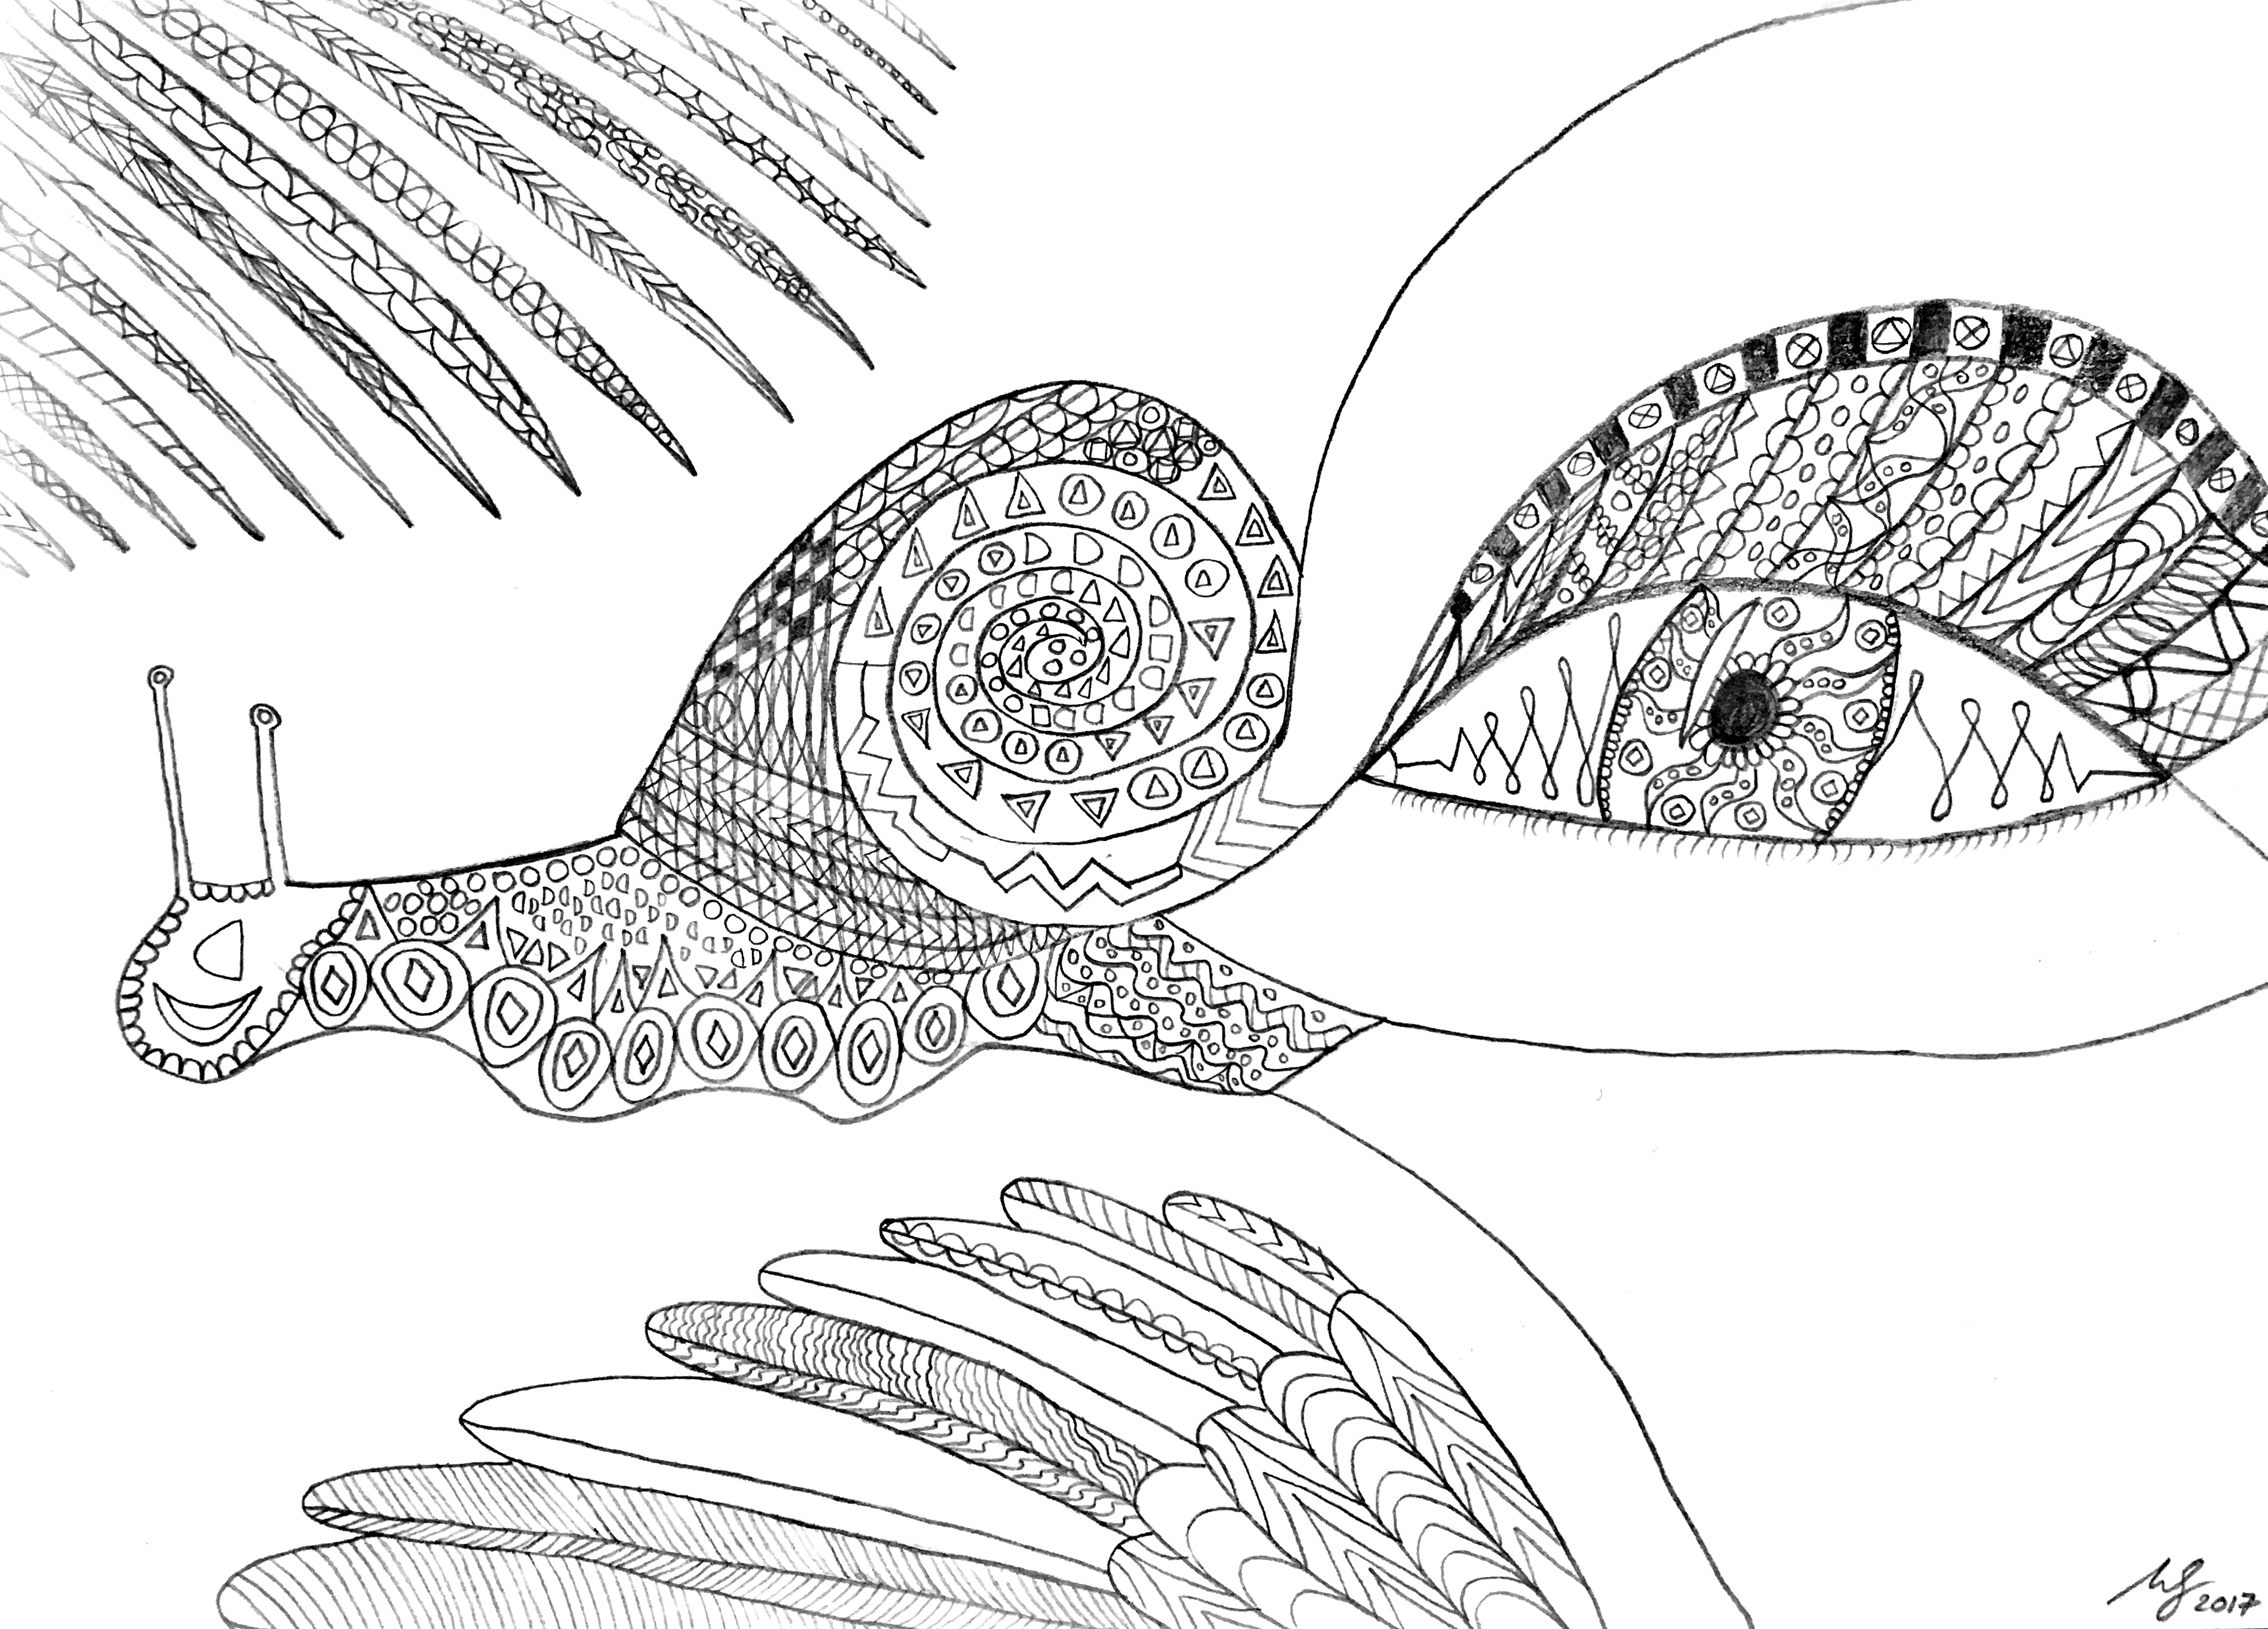 Mindfulness Coloring Pages Pdf : Mindfulness colouring sheets thinking clearly